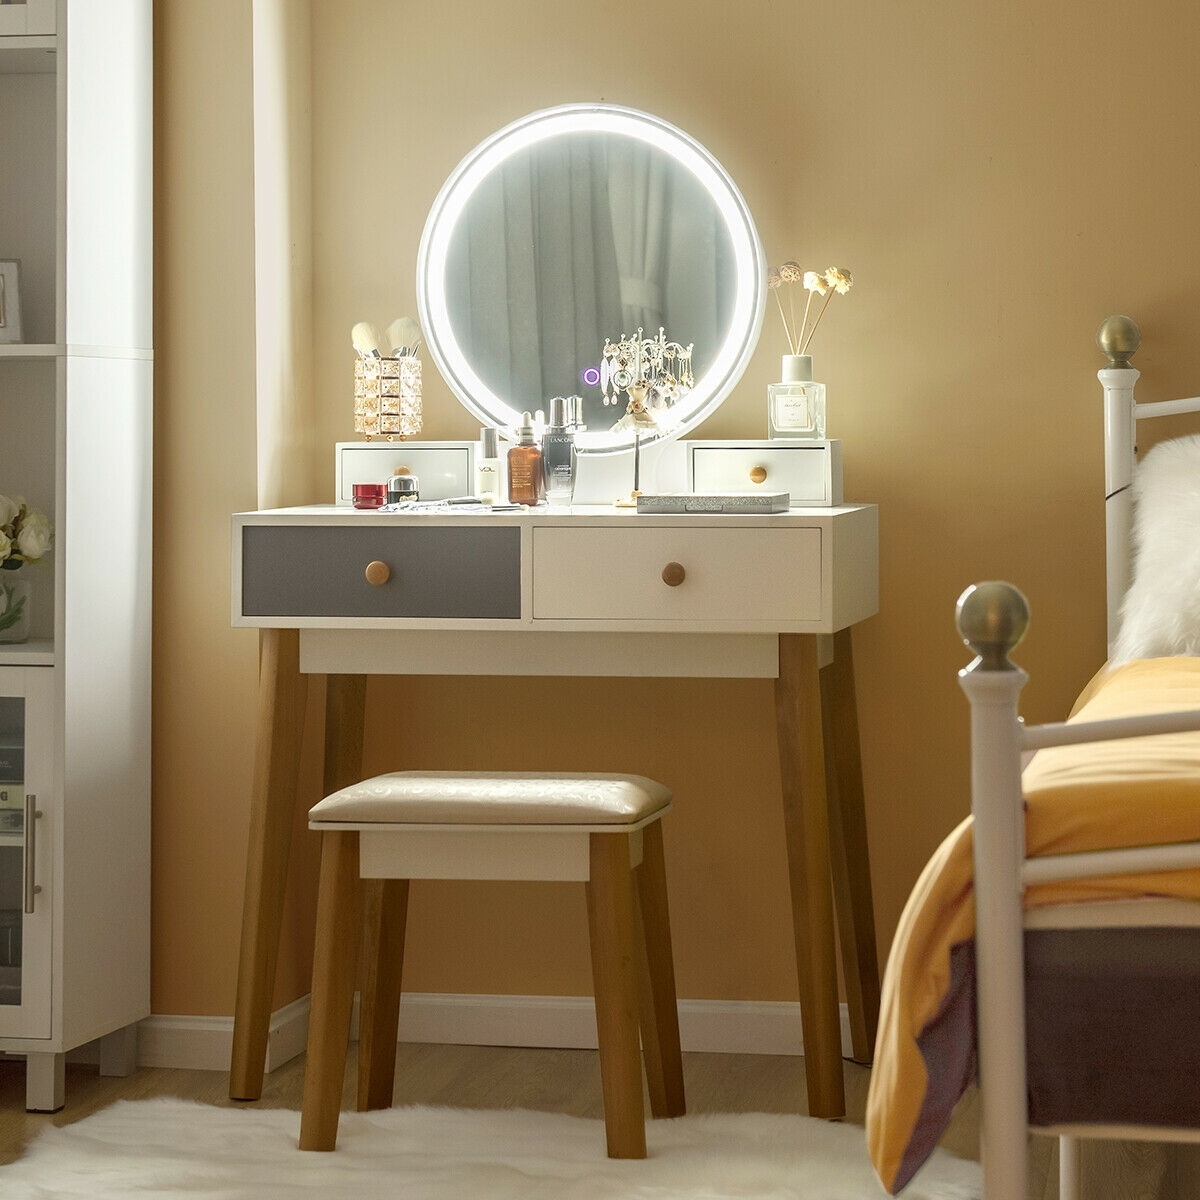 Image of Makeup Dressing Table with 4 Drawers and Lighted Mirror